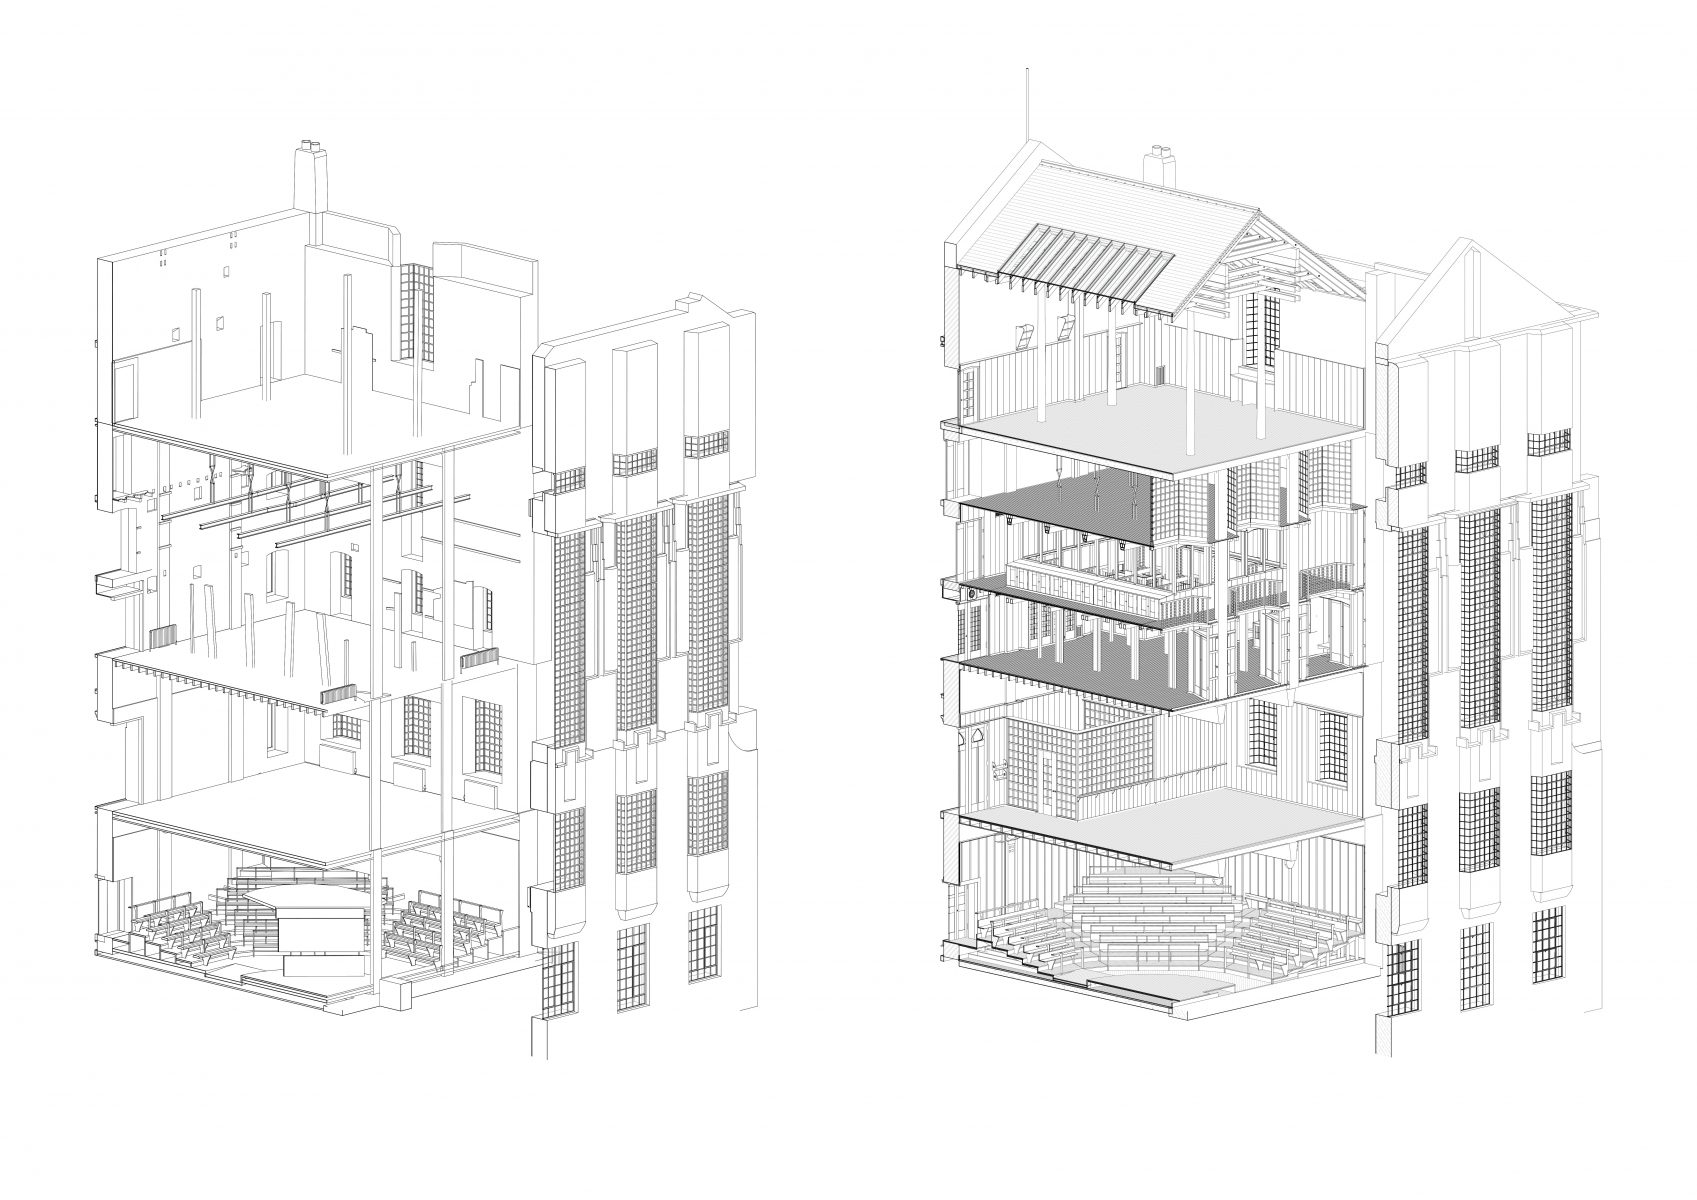 Building Information Model - before and after reconstruction